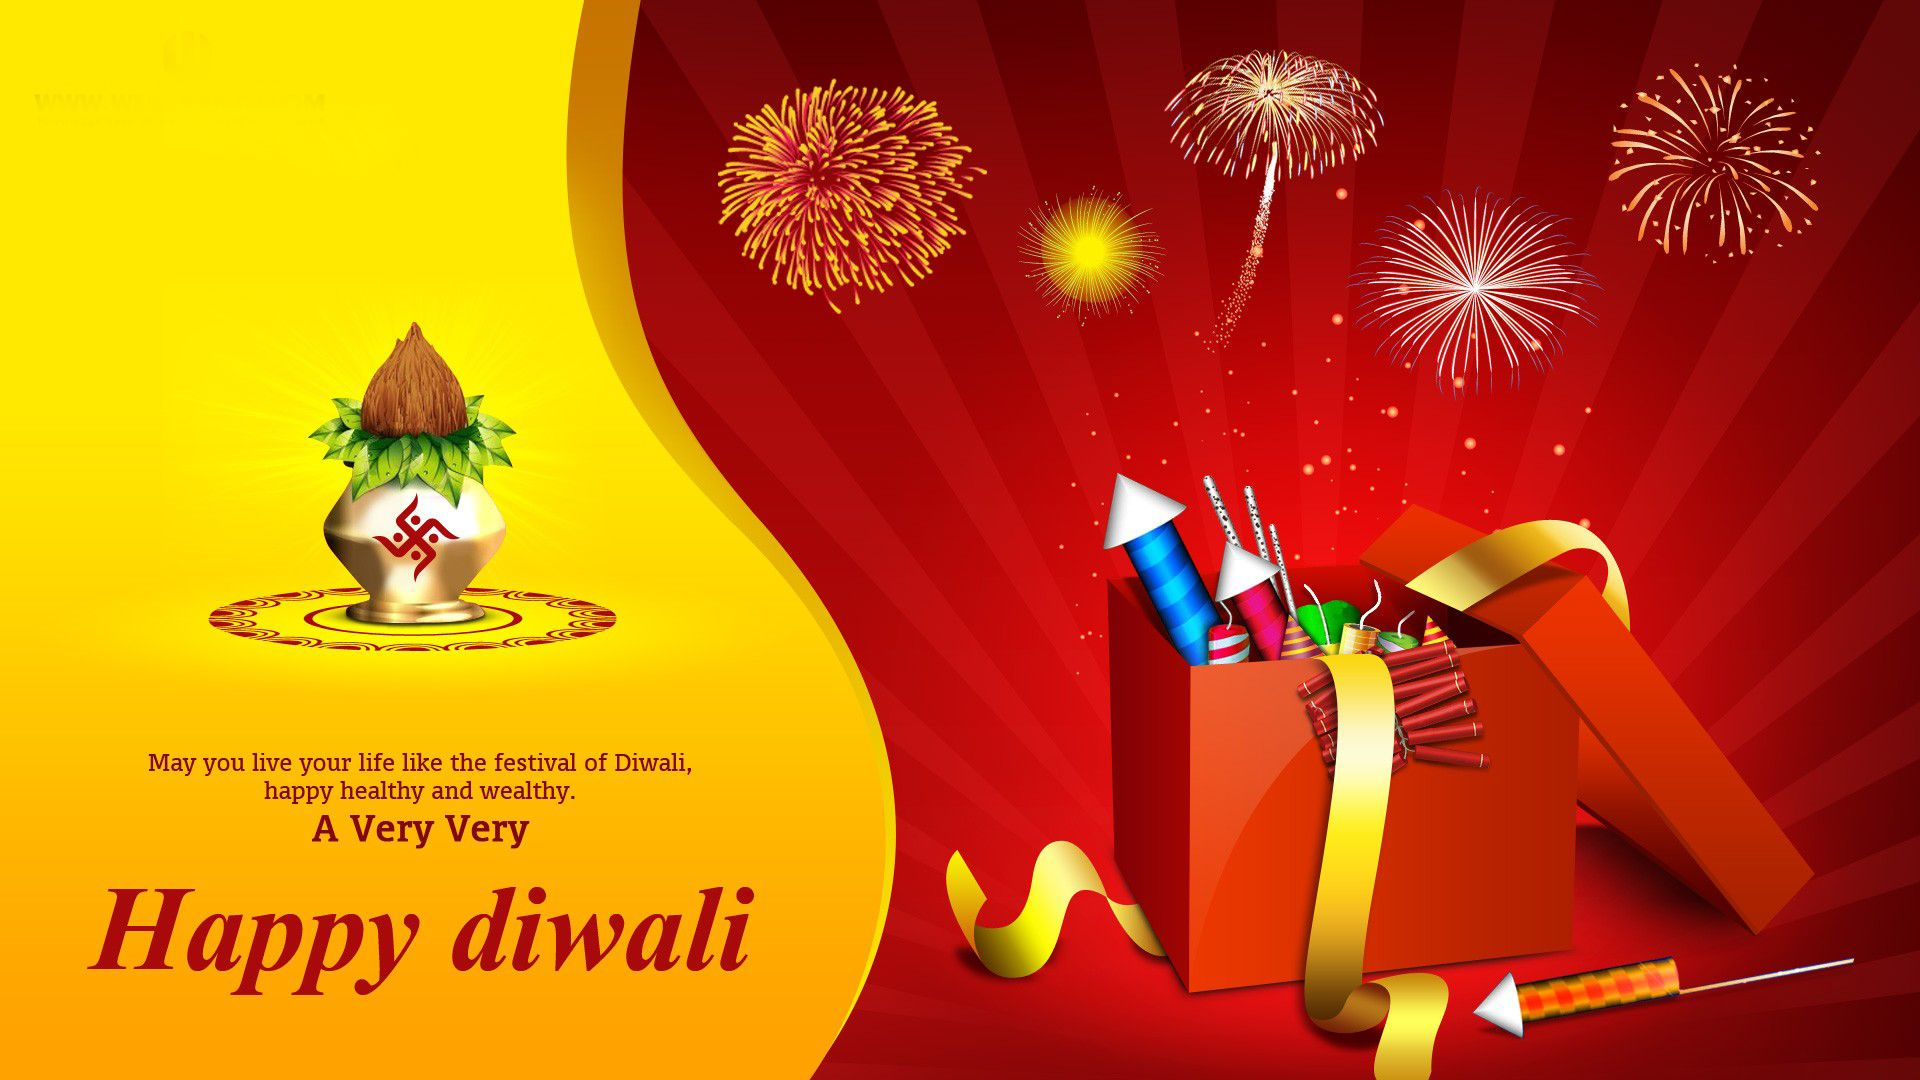 Happy Diwali 2015 Download New Wallpapers And Greeting Cards Http